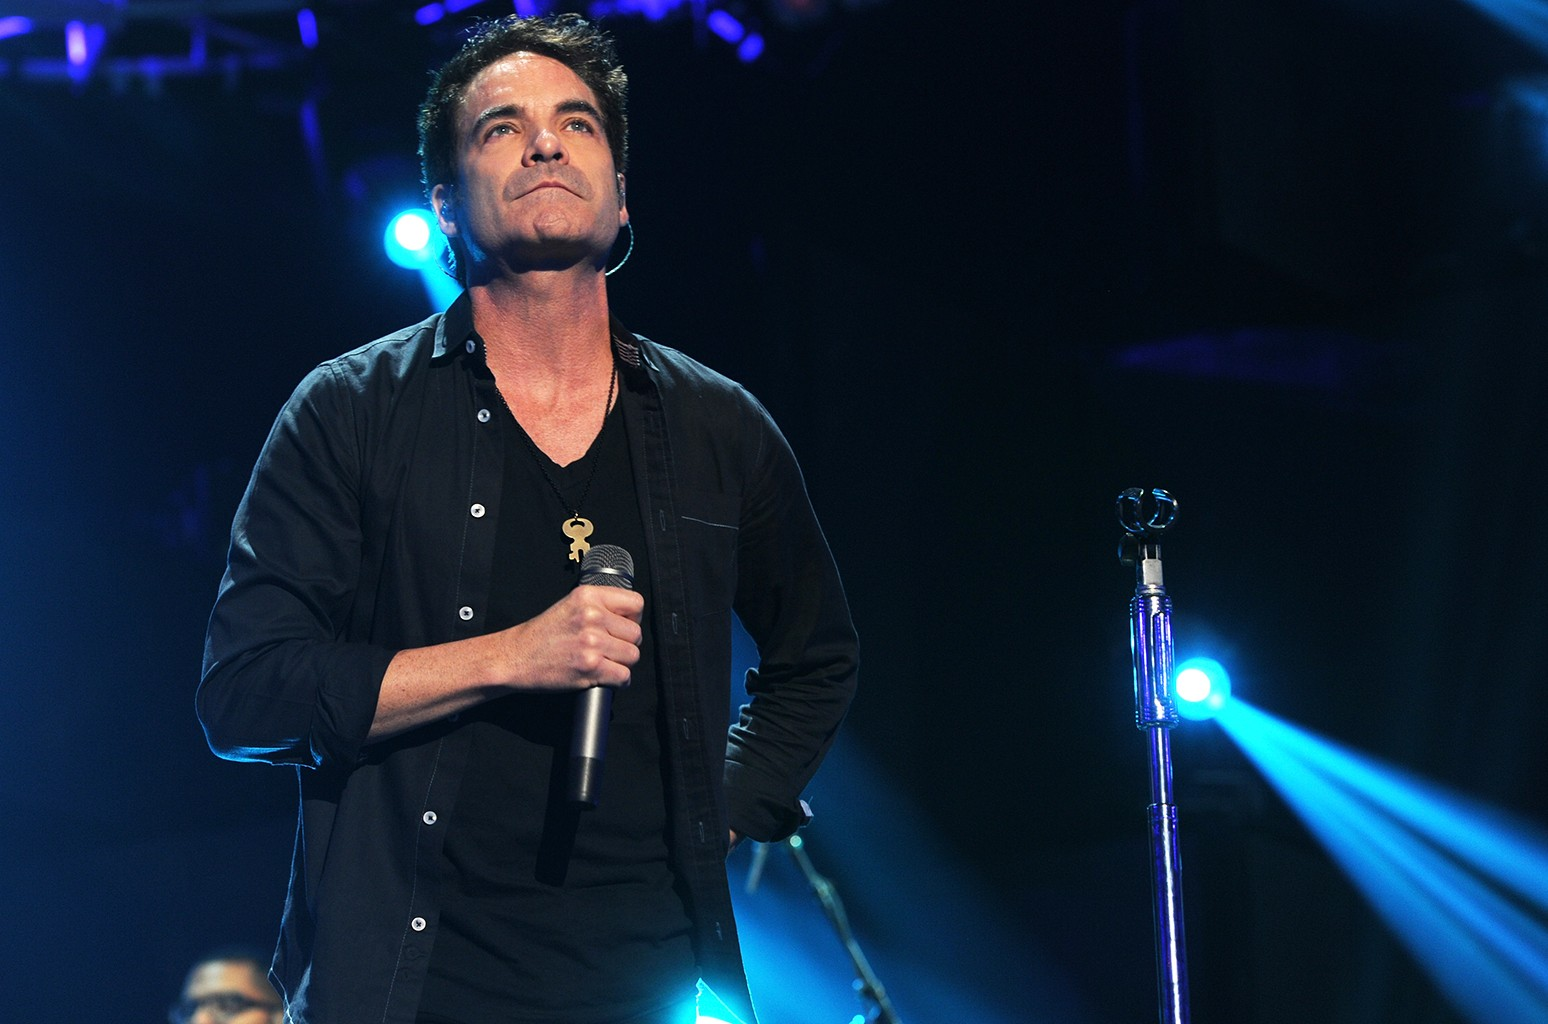 Train perform at the MGM Grand Garden Arena